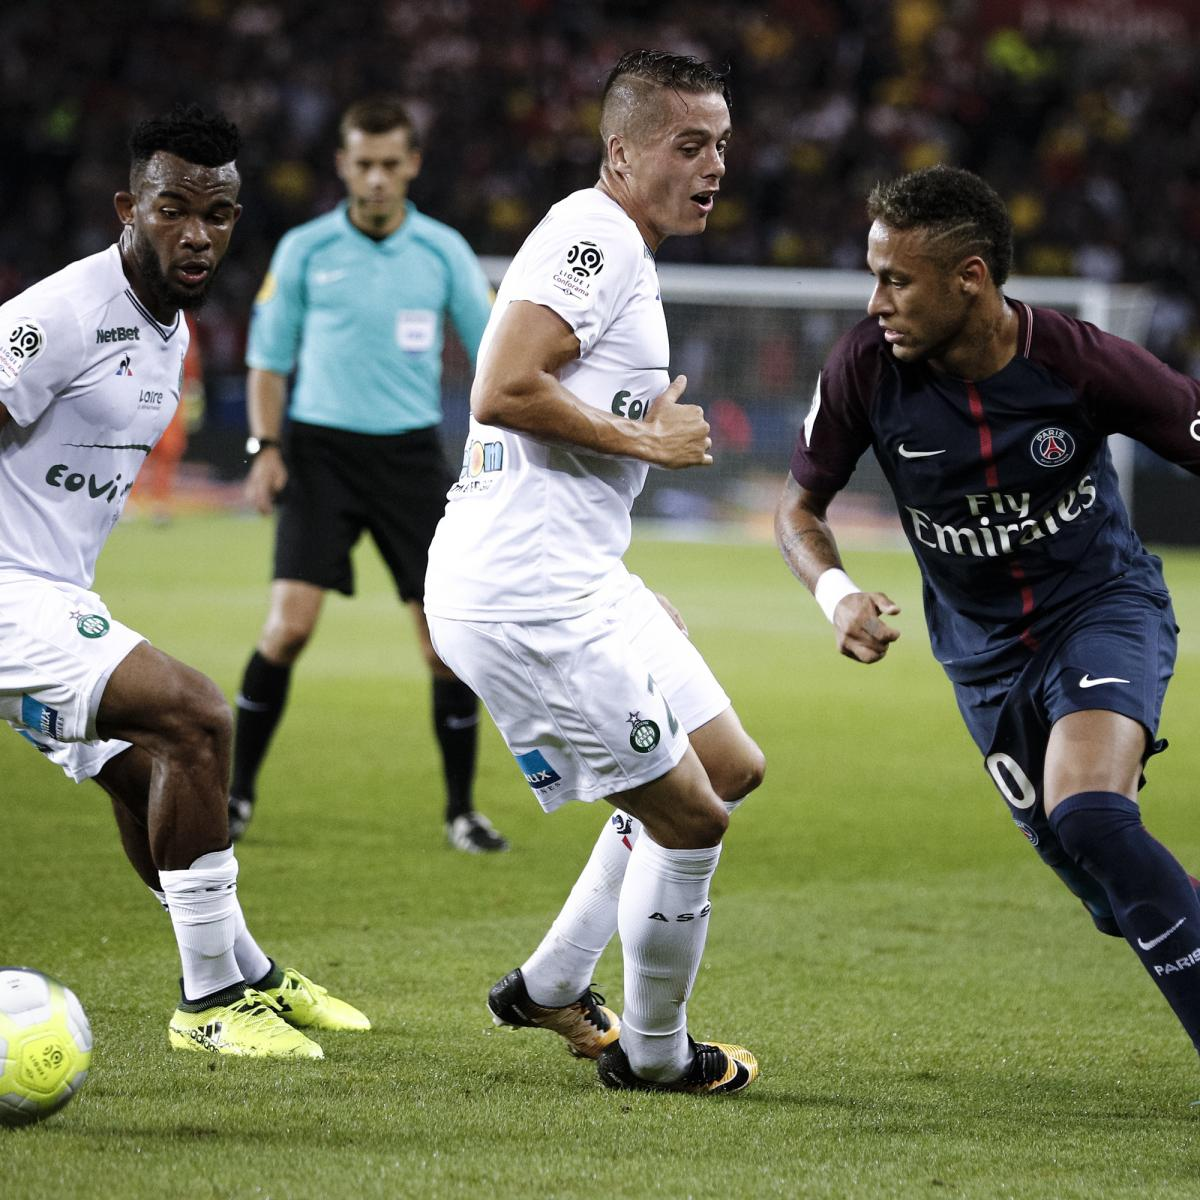 Bastia 0 3 Psg Match Report: Neymar Anonymous As PSG Beat St.-Etienne 3-0 In Ligue 1